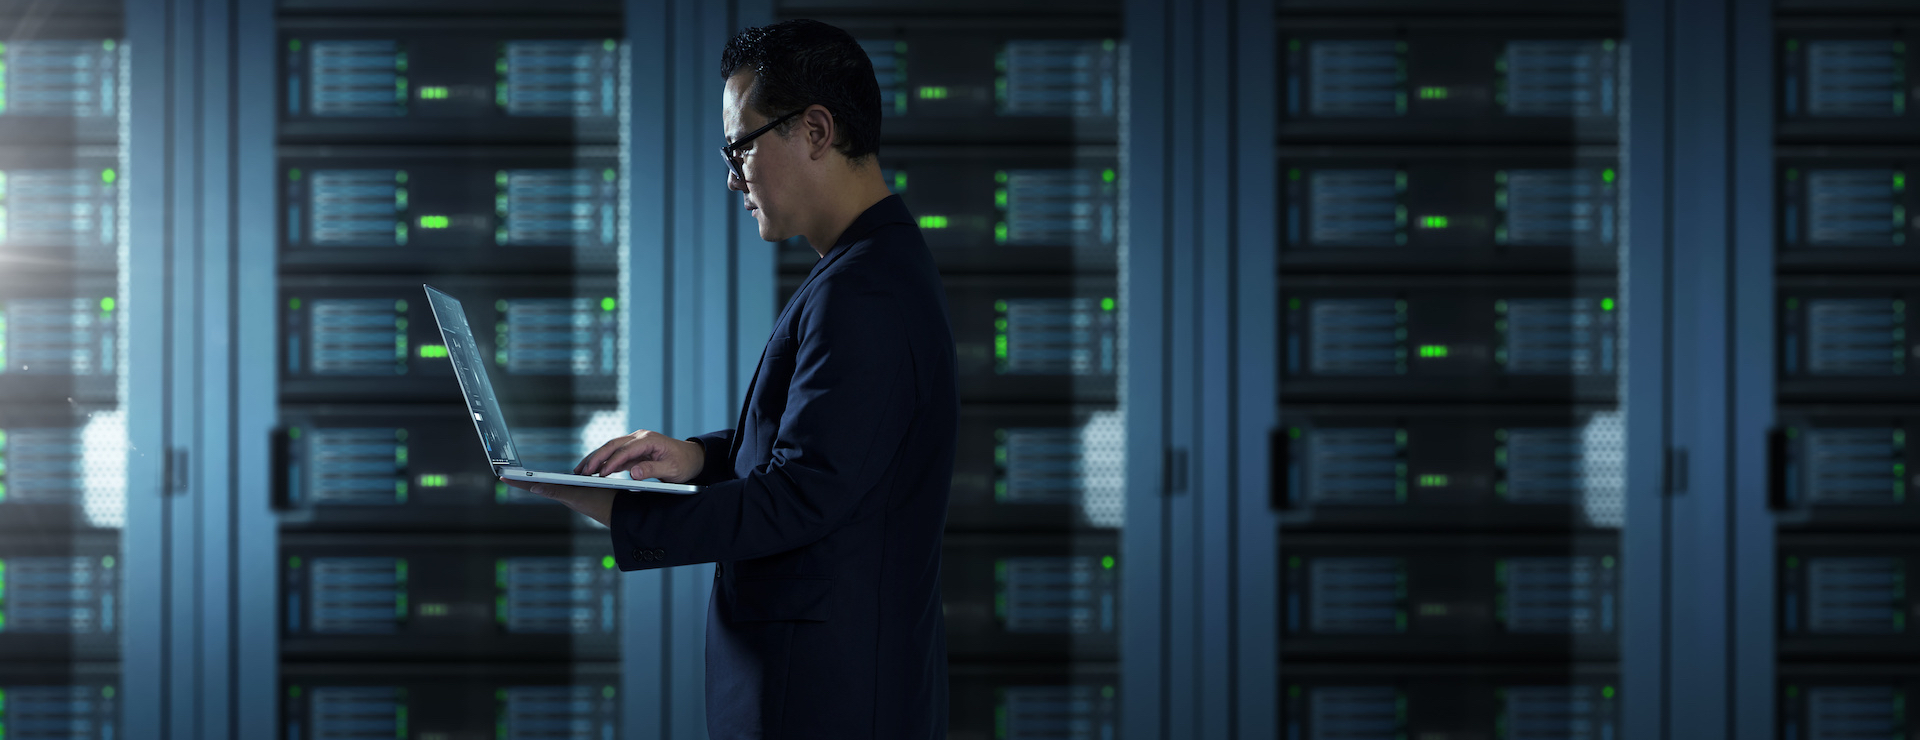 The Persistent Threat Of Cyberattacks